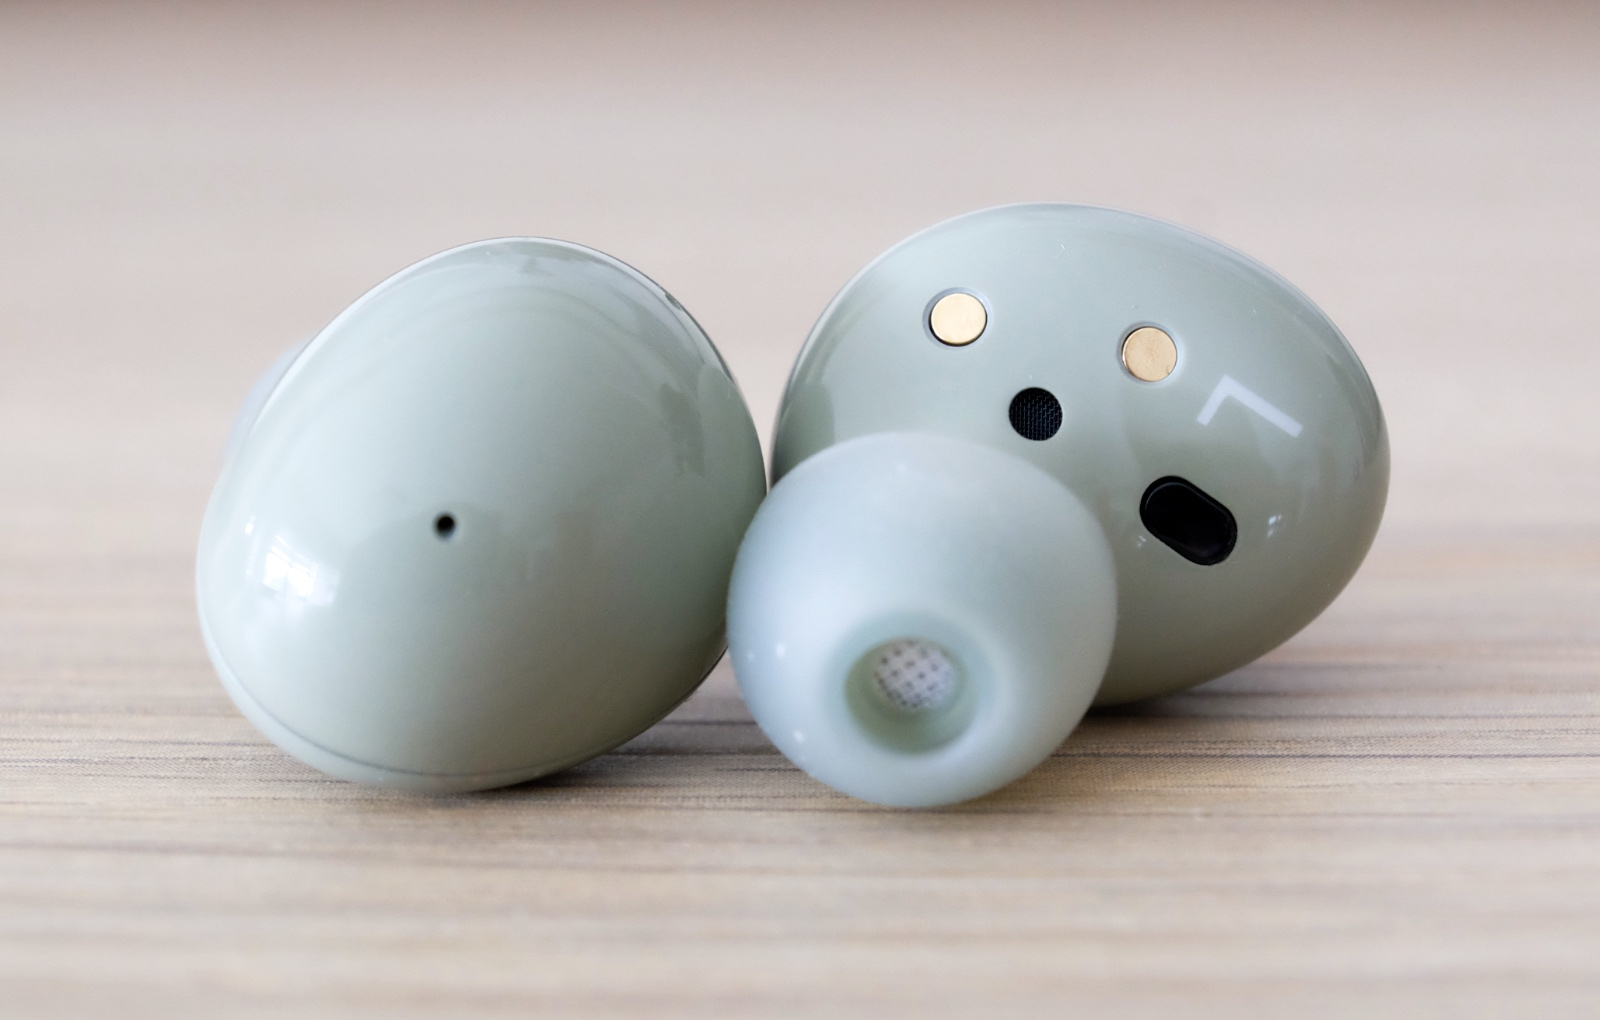 If you own an Android phone and don't want to spend too much on true wireless earbuds with high-end features, this is it. I can't think of anything better than the Galaxy Buds2.